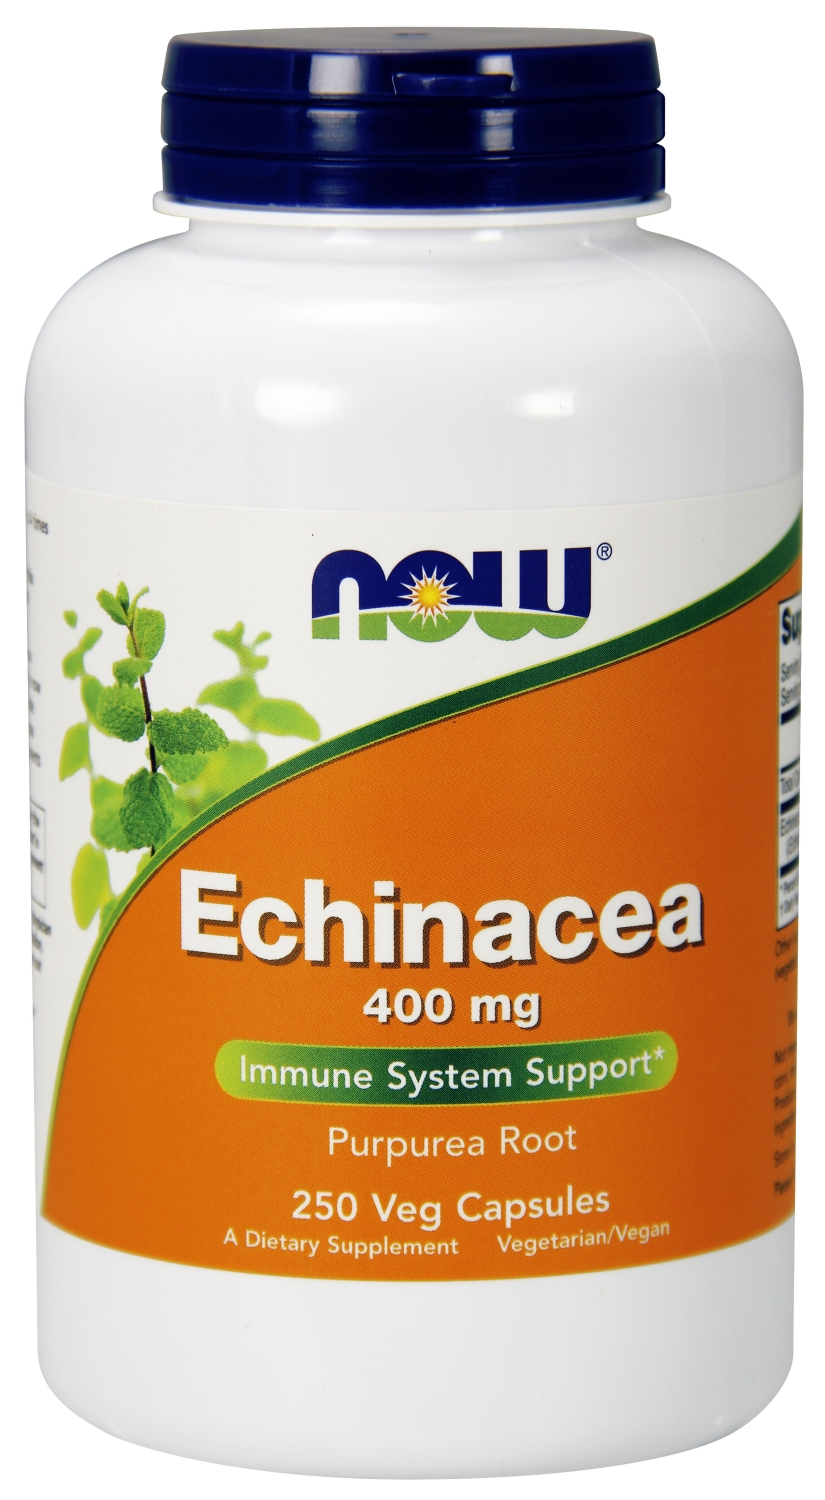 Echinacea Purpurea Root 400 mg 250 caps by NOW